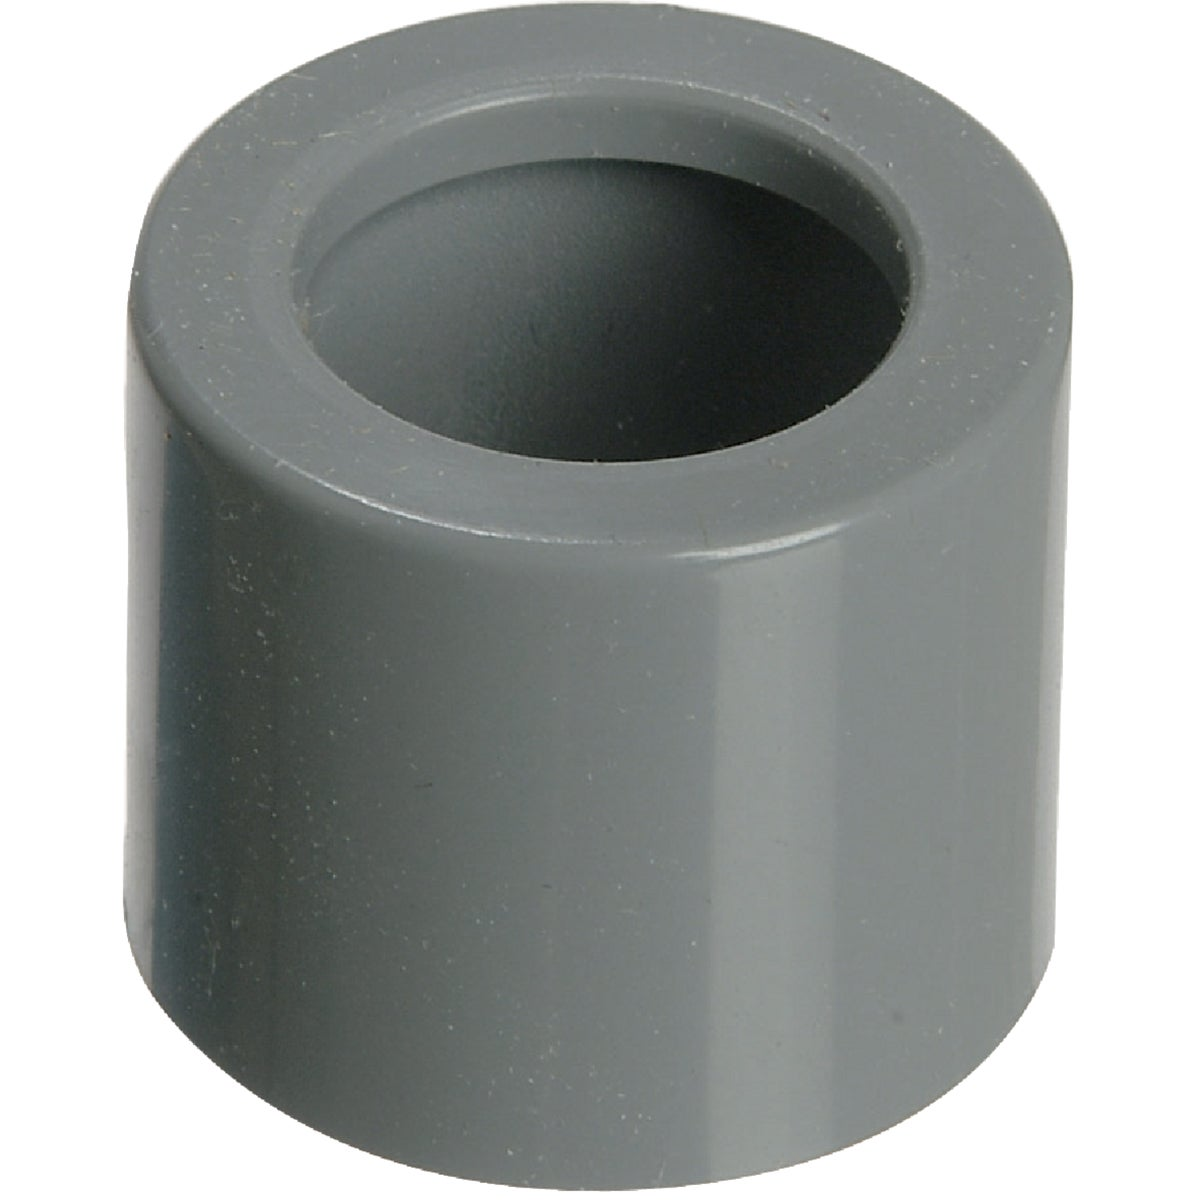 1X3/4 REDUCER - E950FECTN by Thomas & Betts